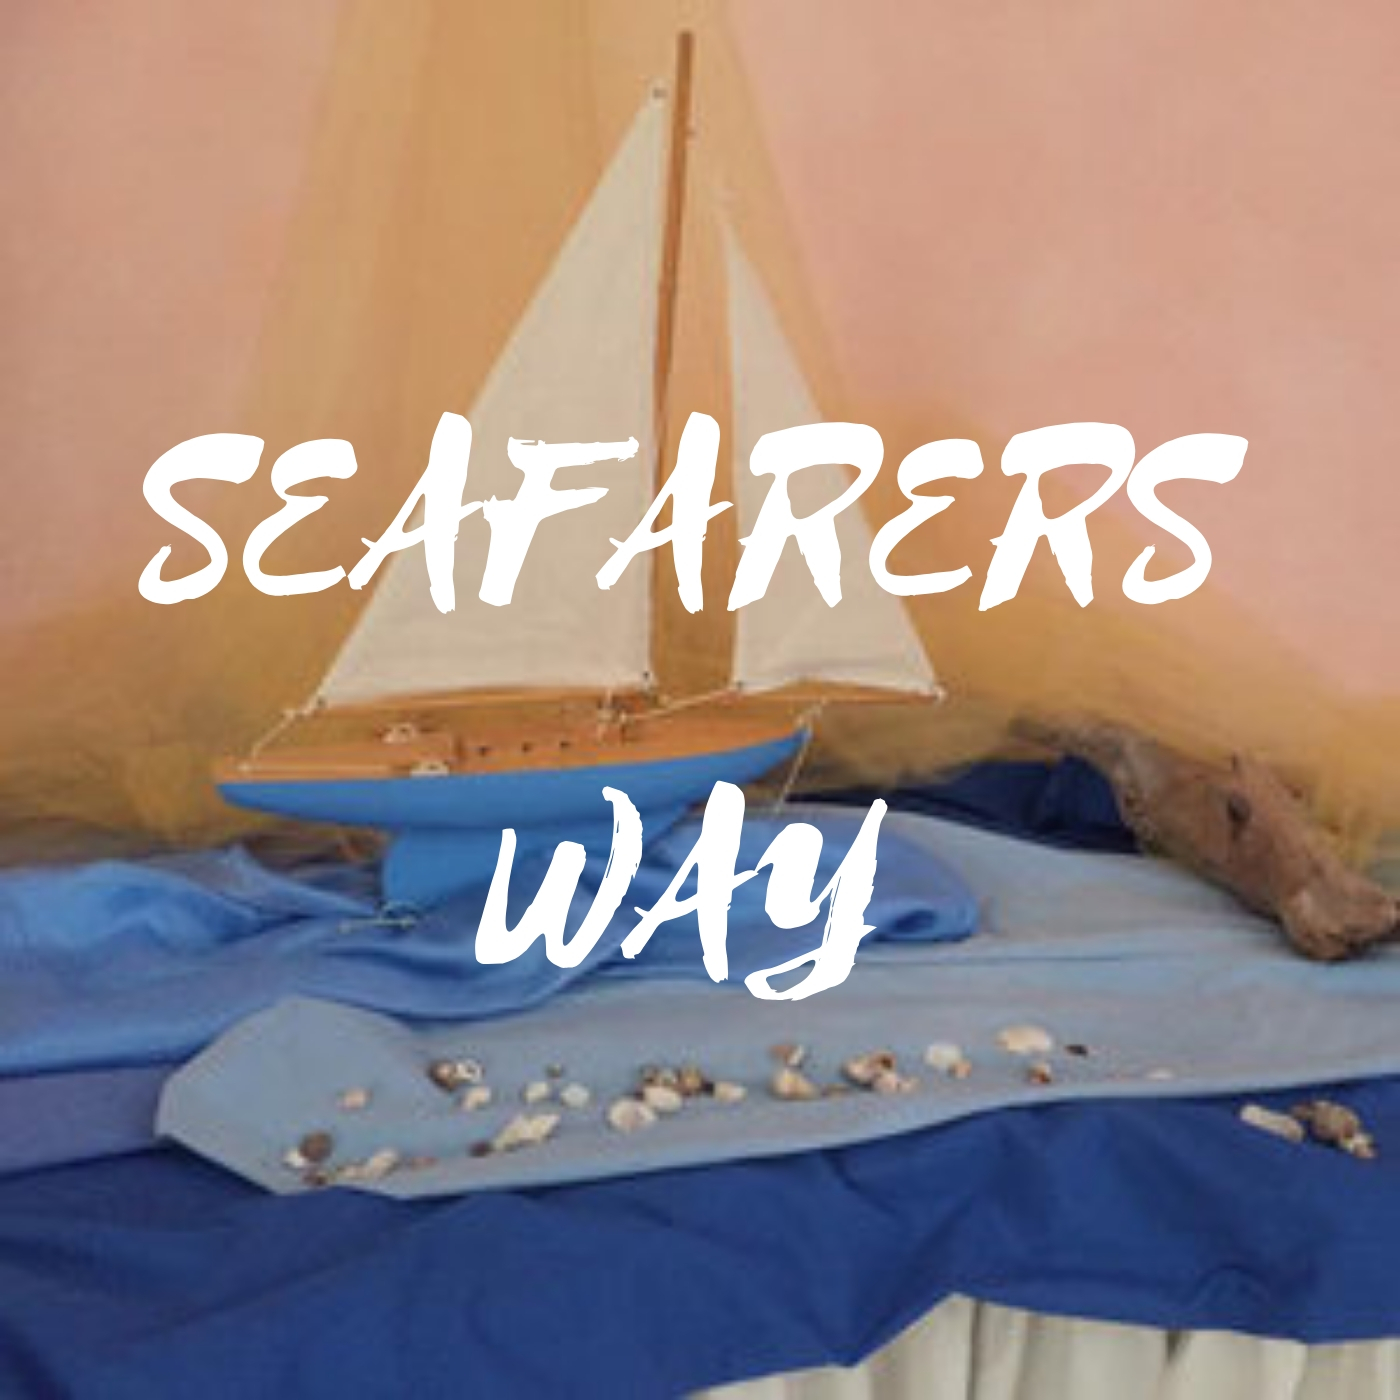 JULY 8 - 12 - This week will involve treasure map making, sea shanties, and wee boat making.